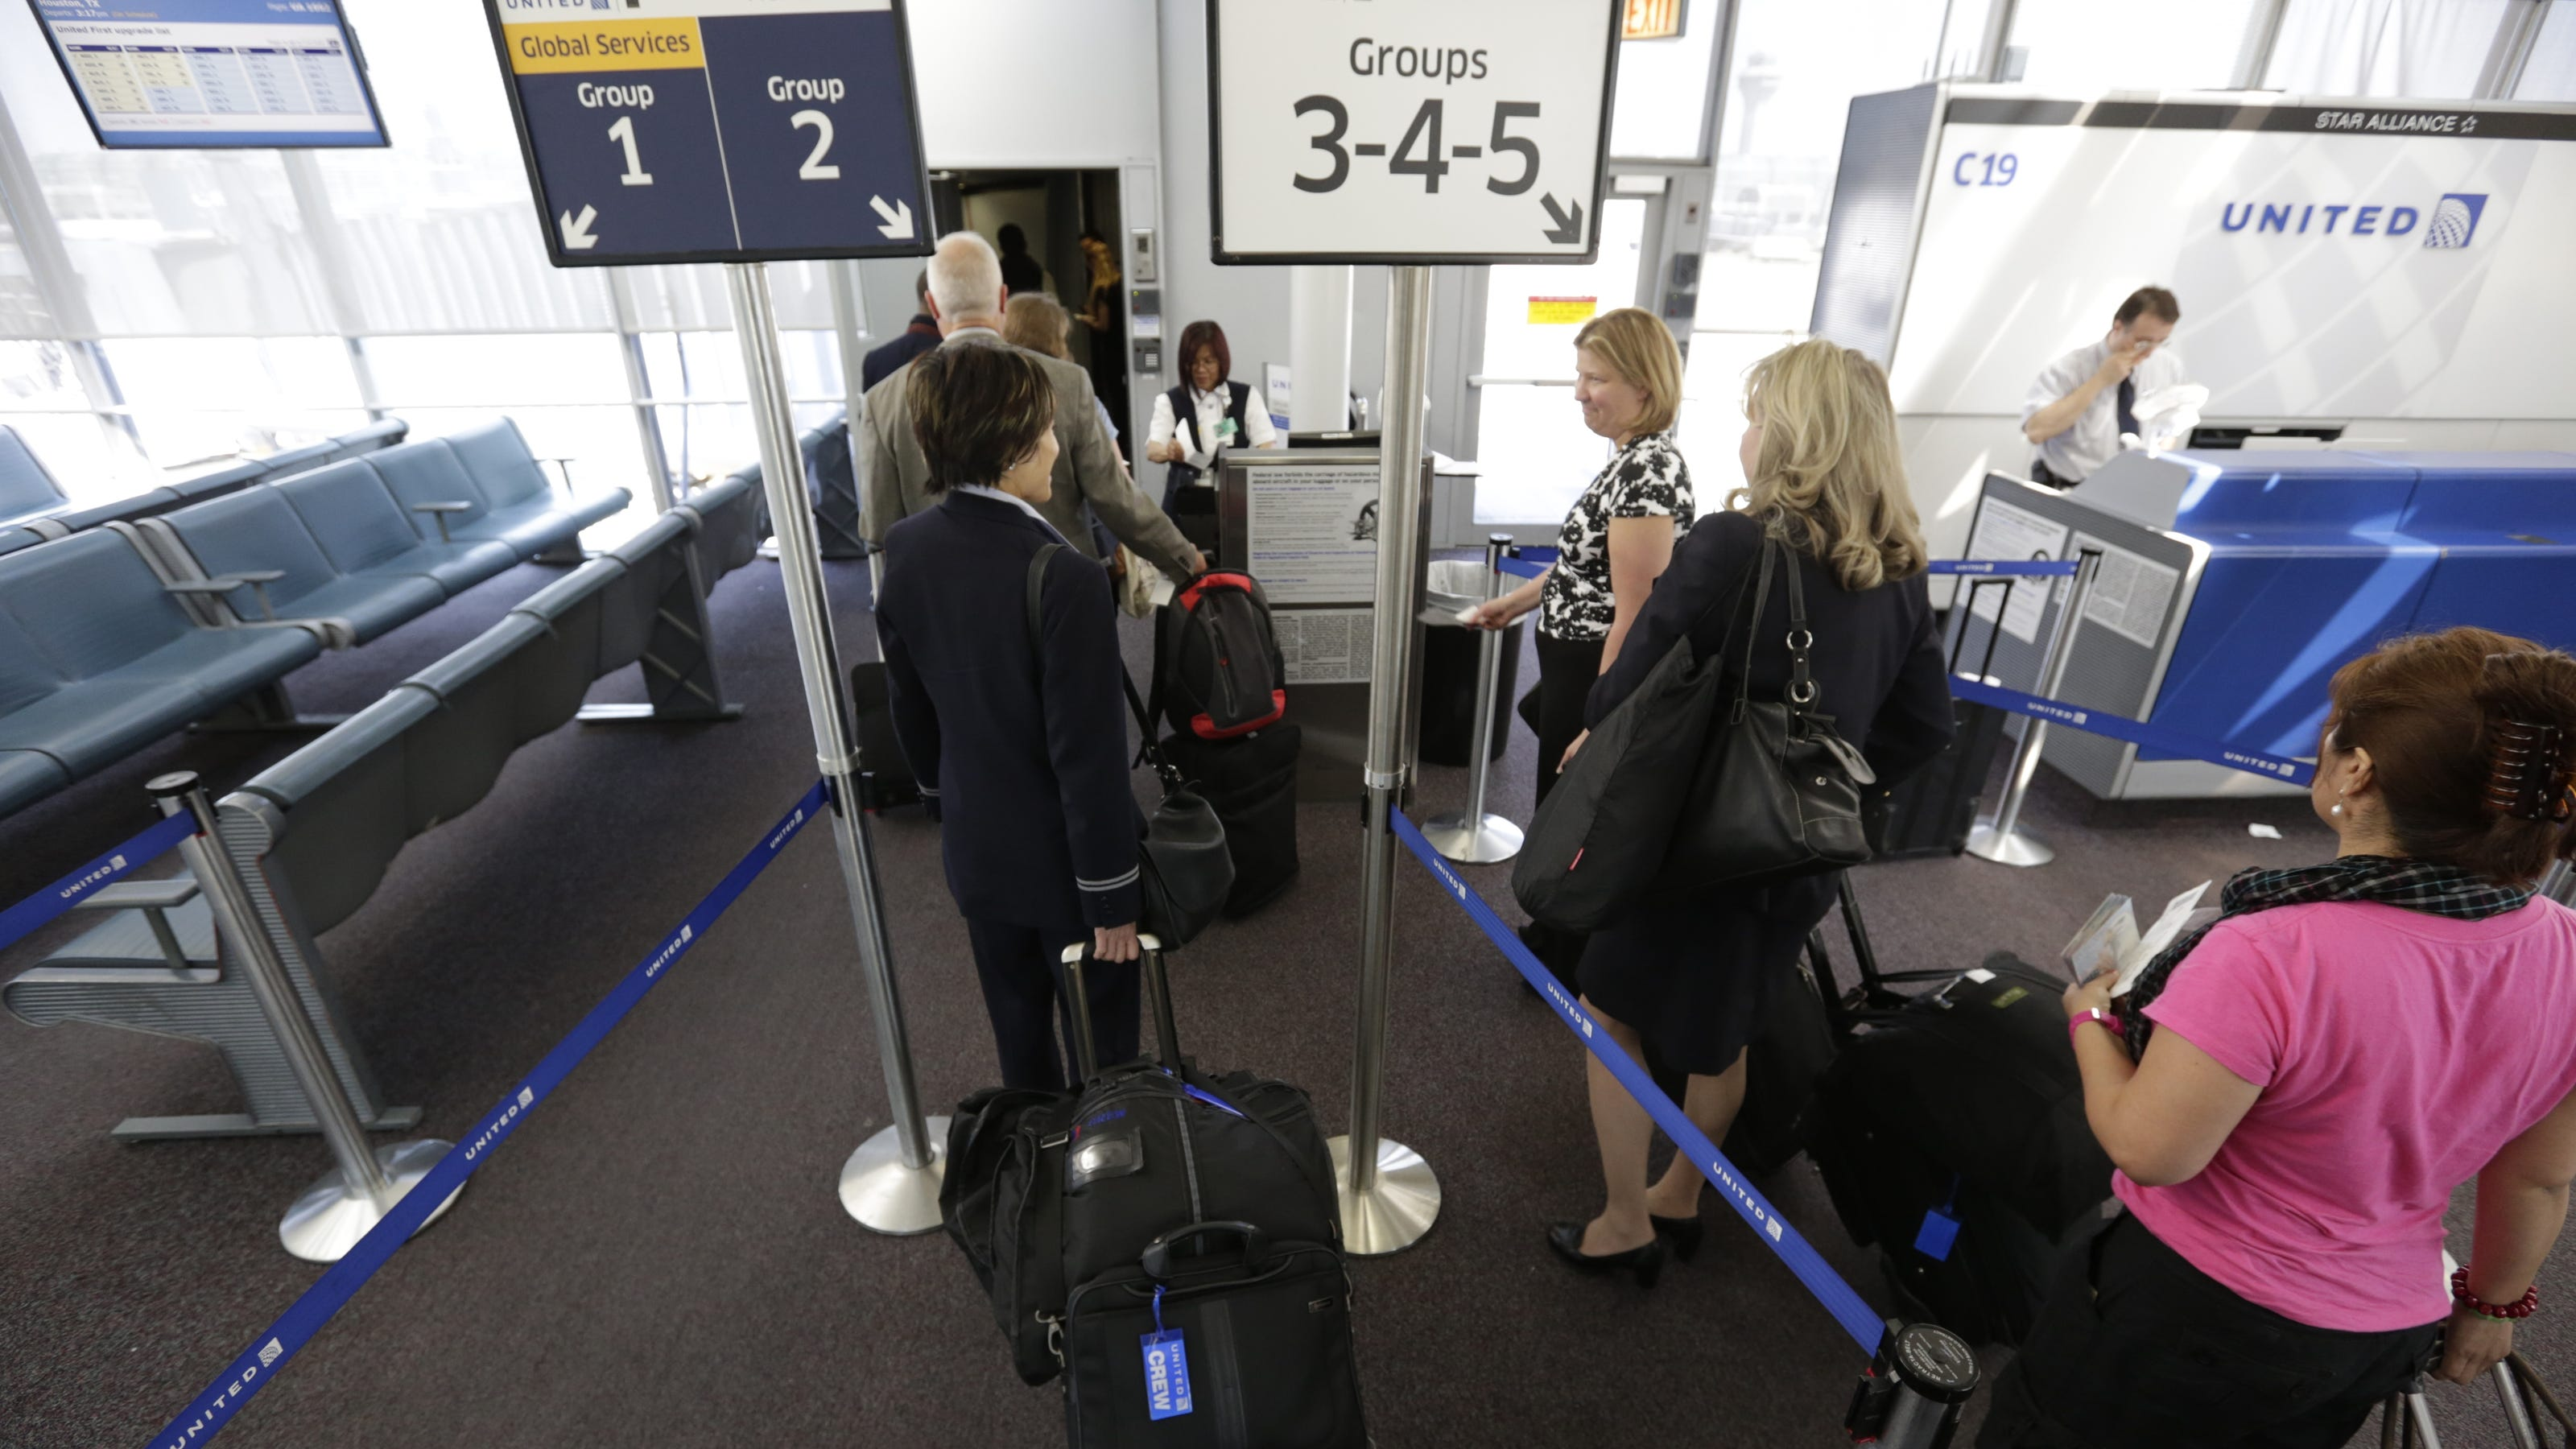 Airlines Keep Searching For The Perfect Boarding Process